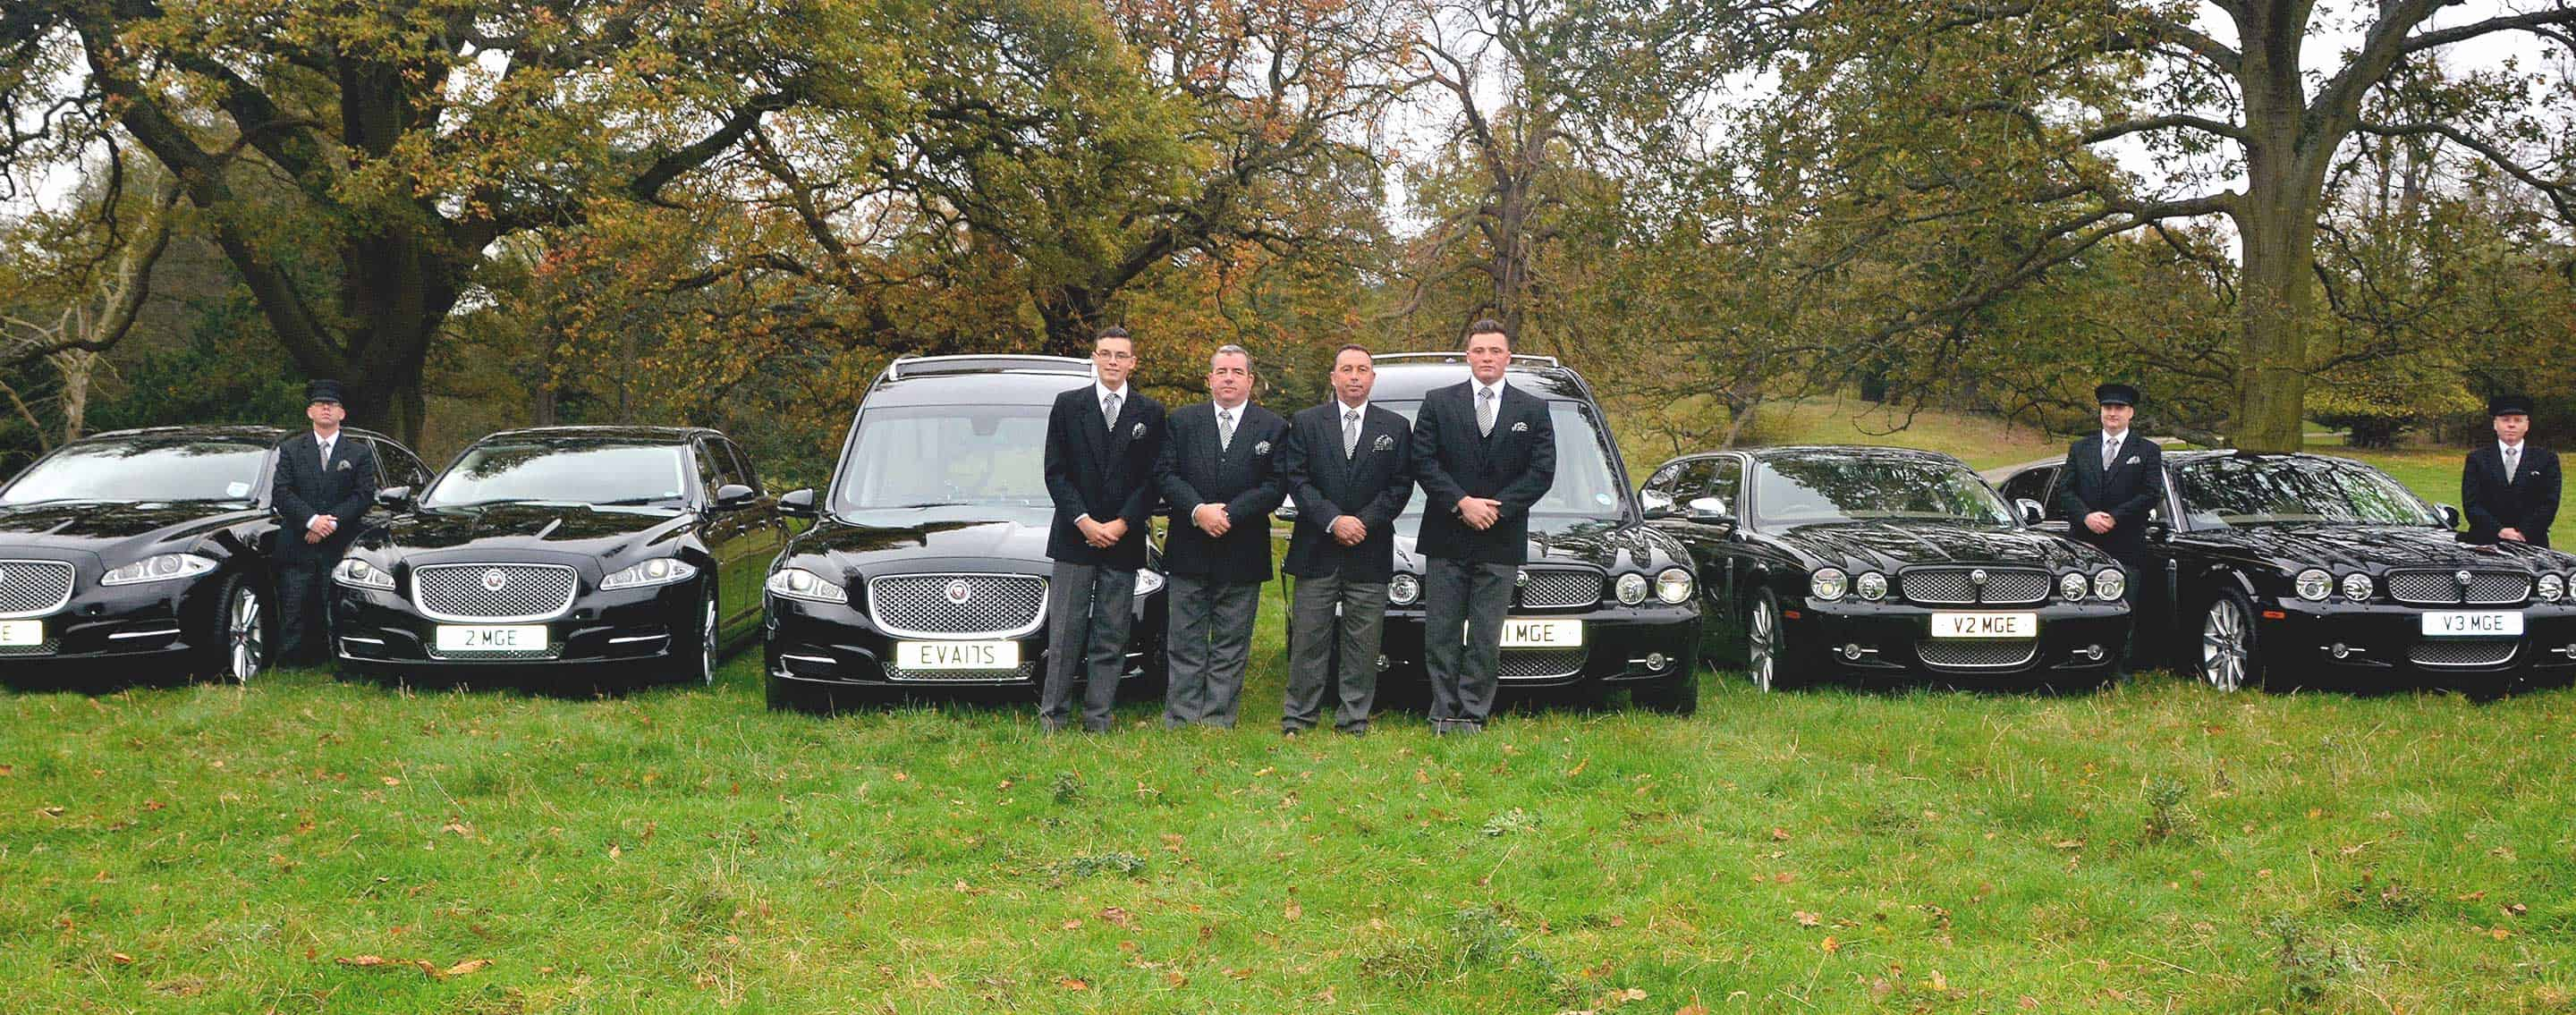 M G Evans Sons Family Funeral Directors Over Half a Century of Expertise